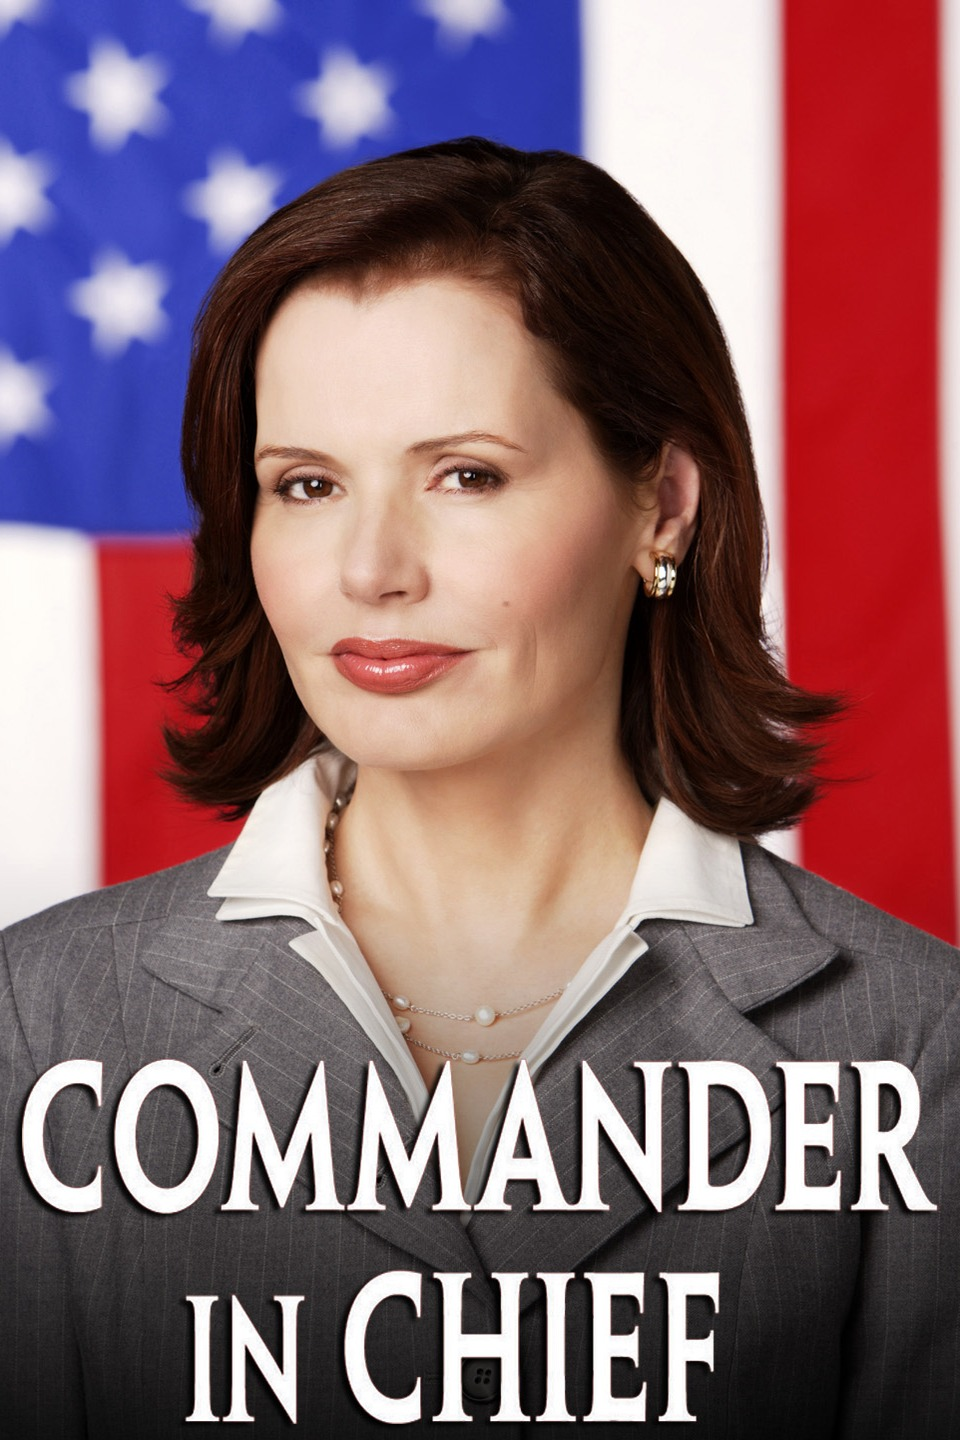 Sort of wish I could ignore party politics and have a Geena Davis vs. Hillary Clinton election